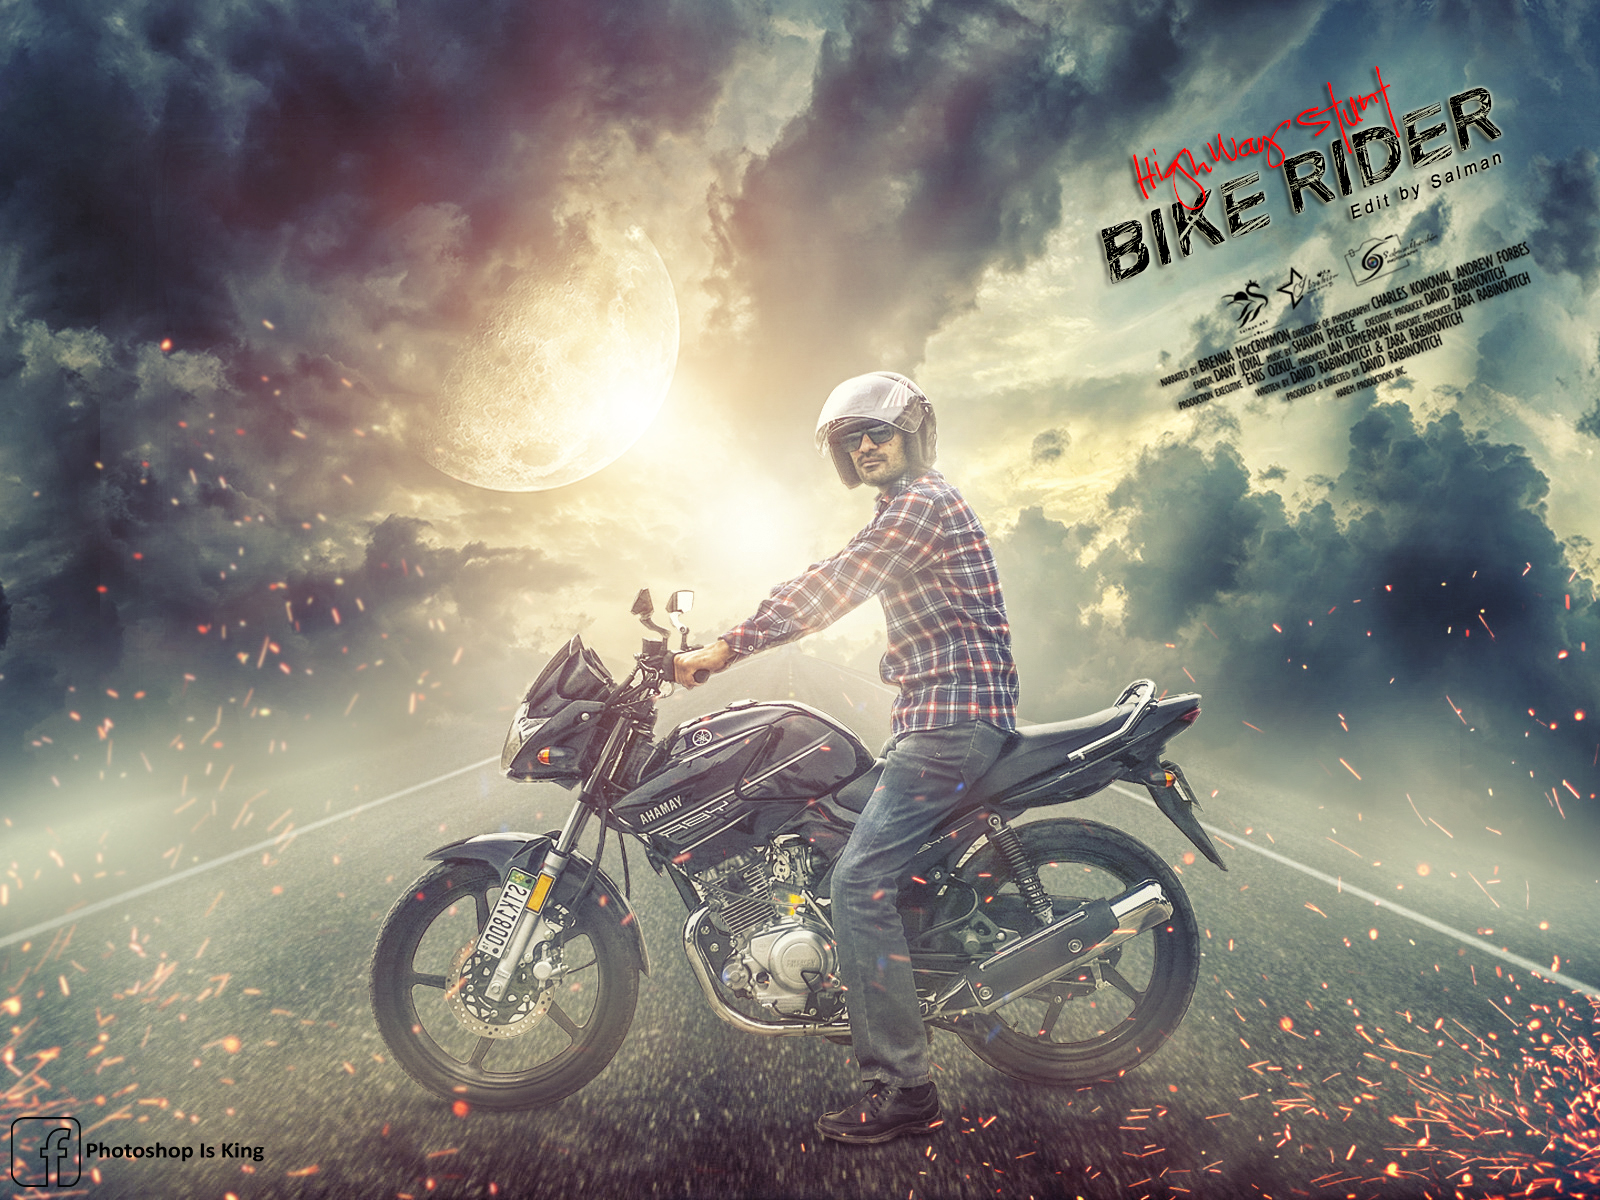 Click here download psd photoshop tutorial photo manipulation click here download psd photoshop tutorial photo manipulation effect bike rider baditri Gallery